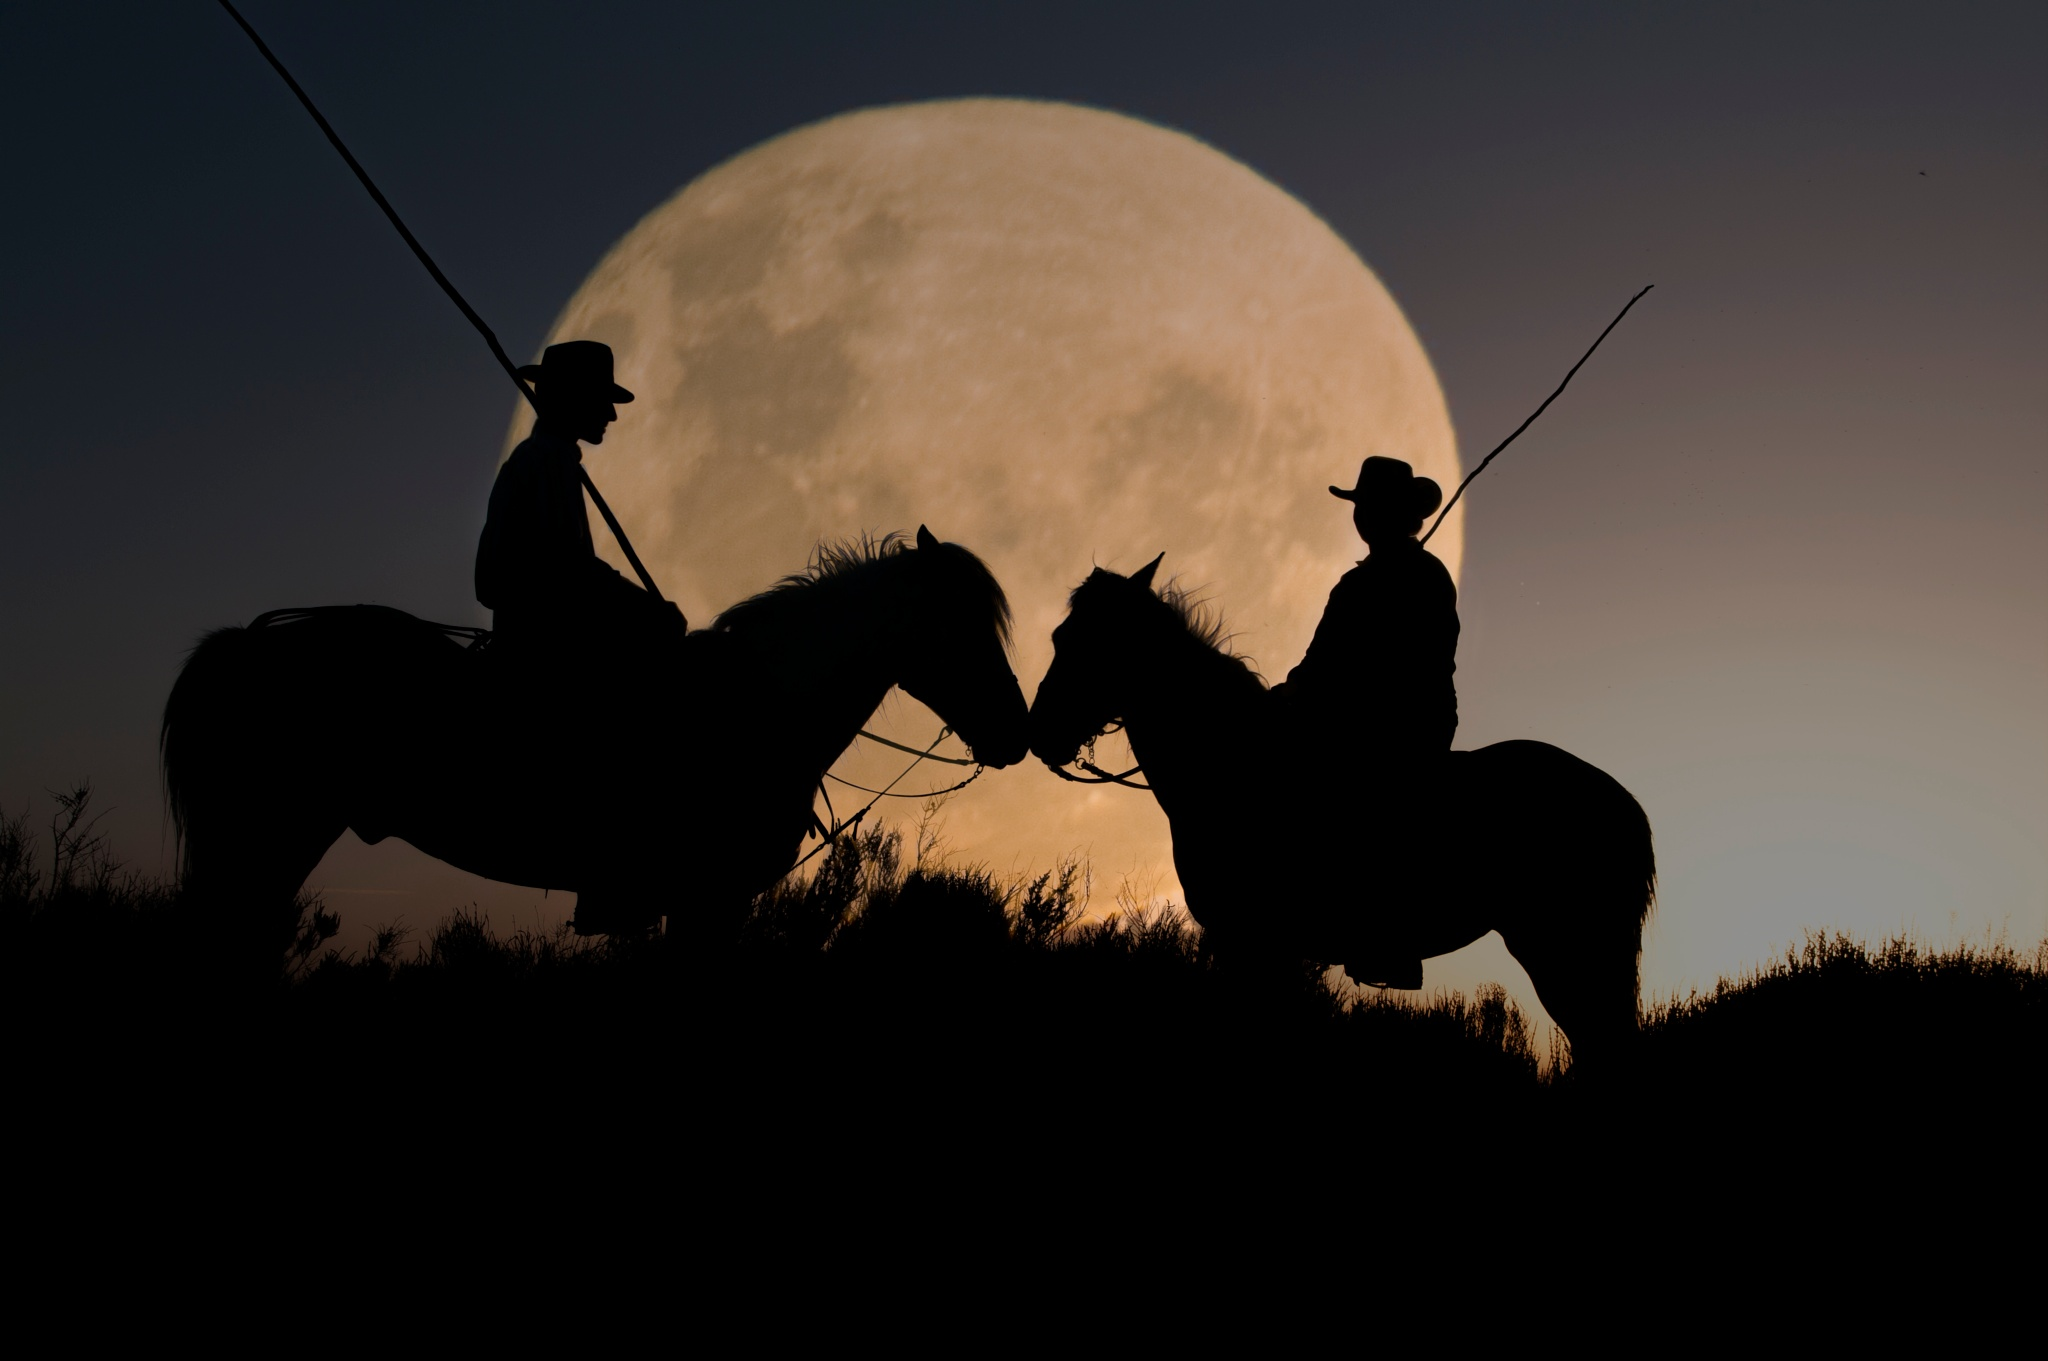 Full Moon Romance by AlisonKekewichDuncan